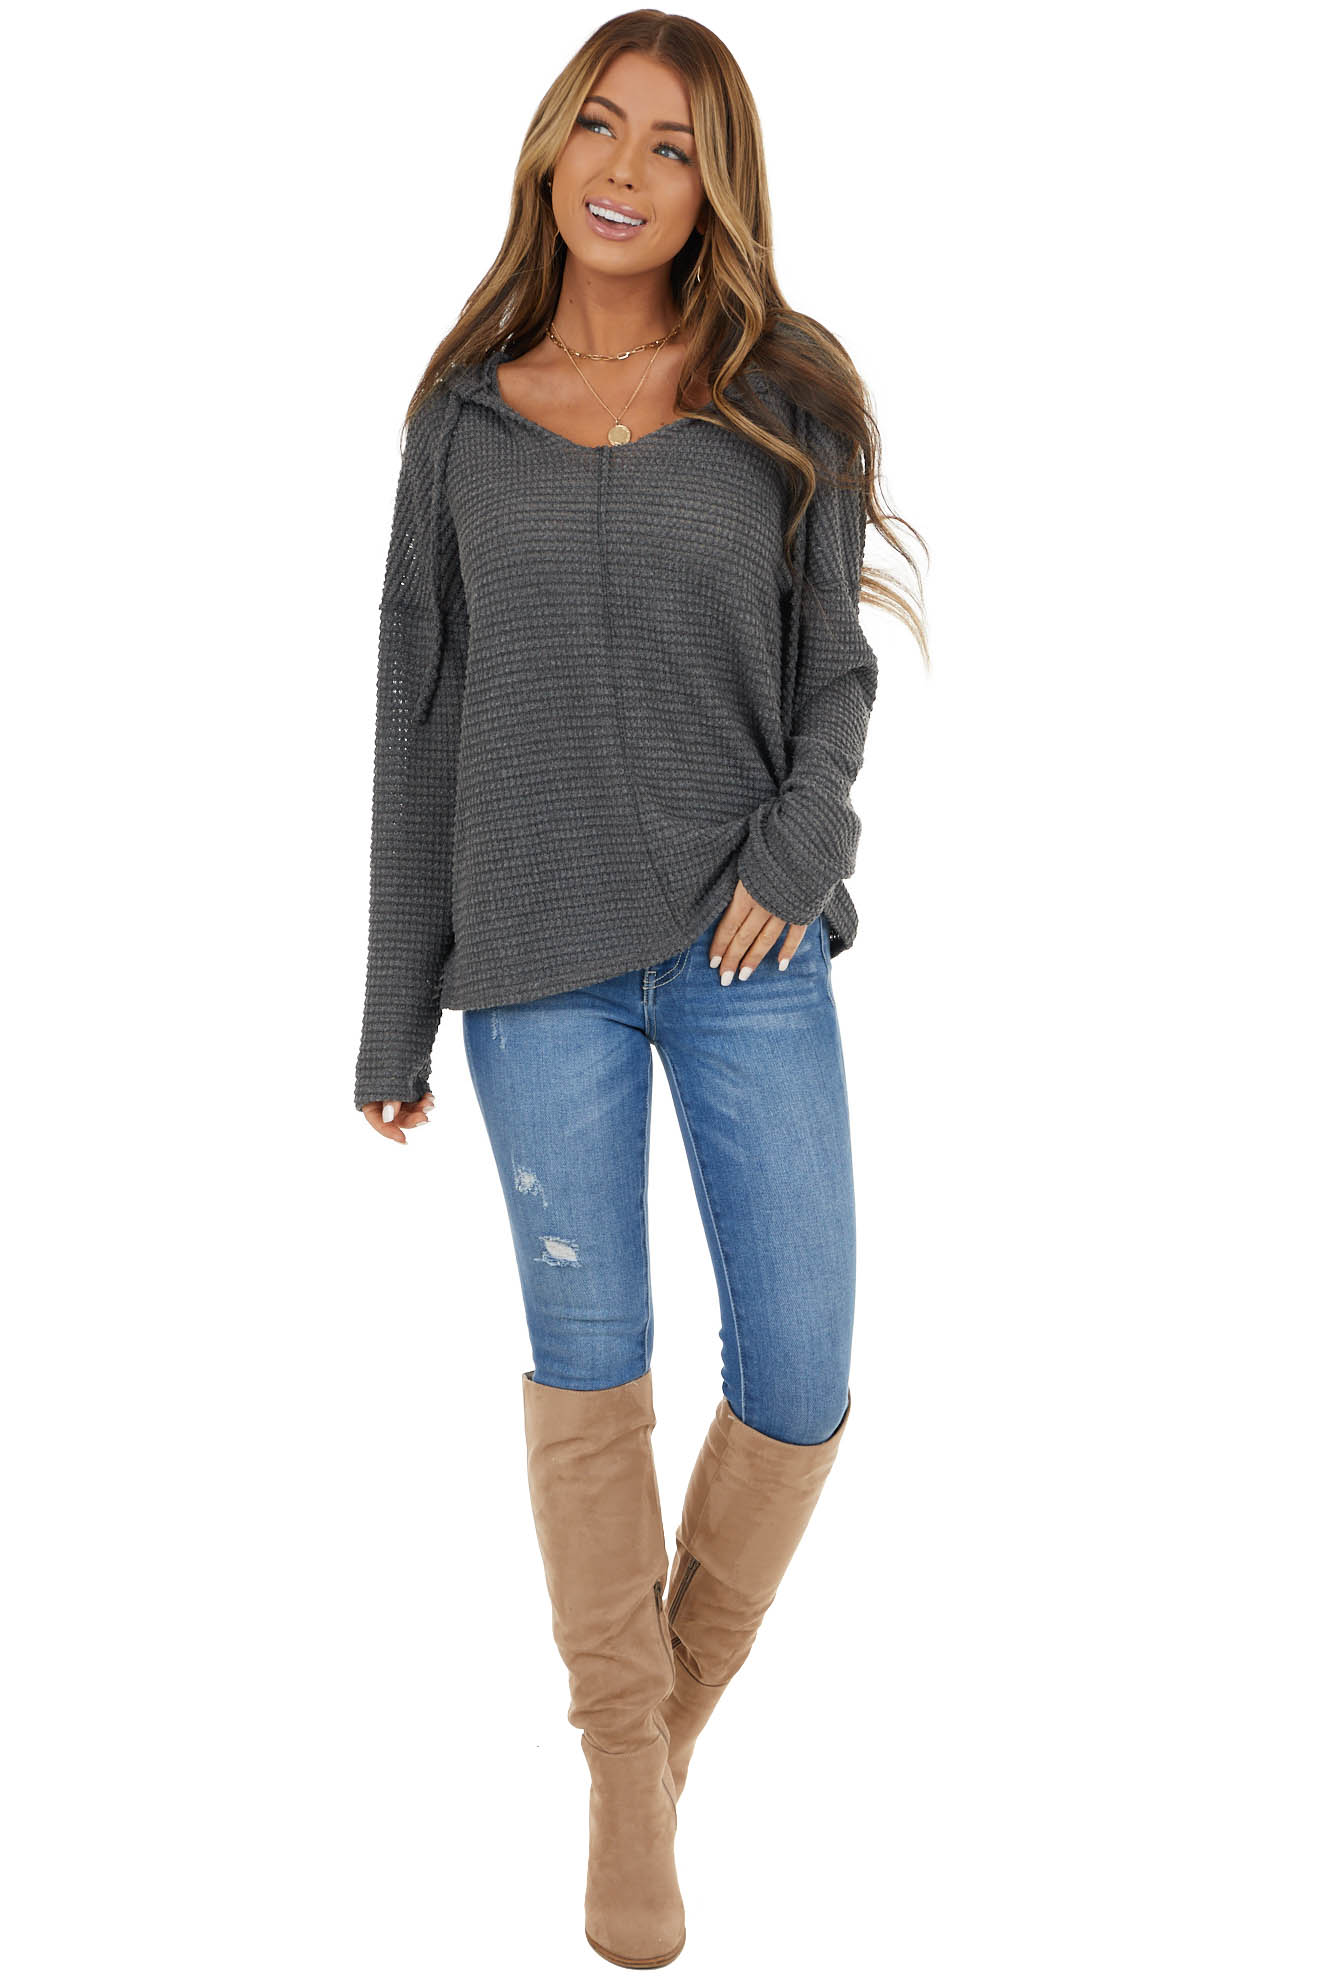 Charcoal Stretchy Waffle Knit Top with Drawstring Hood